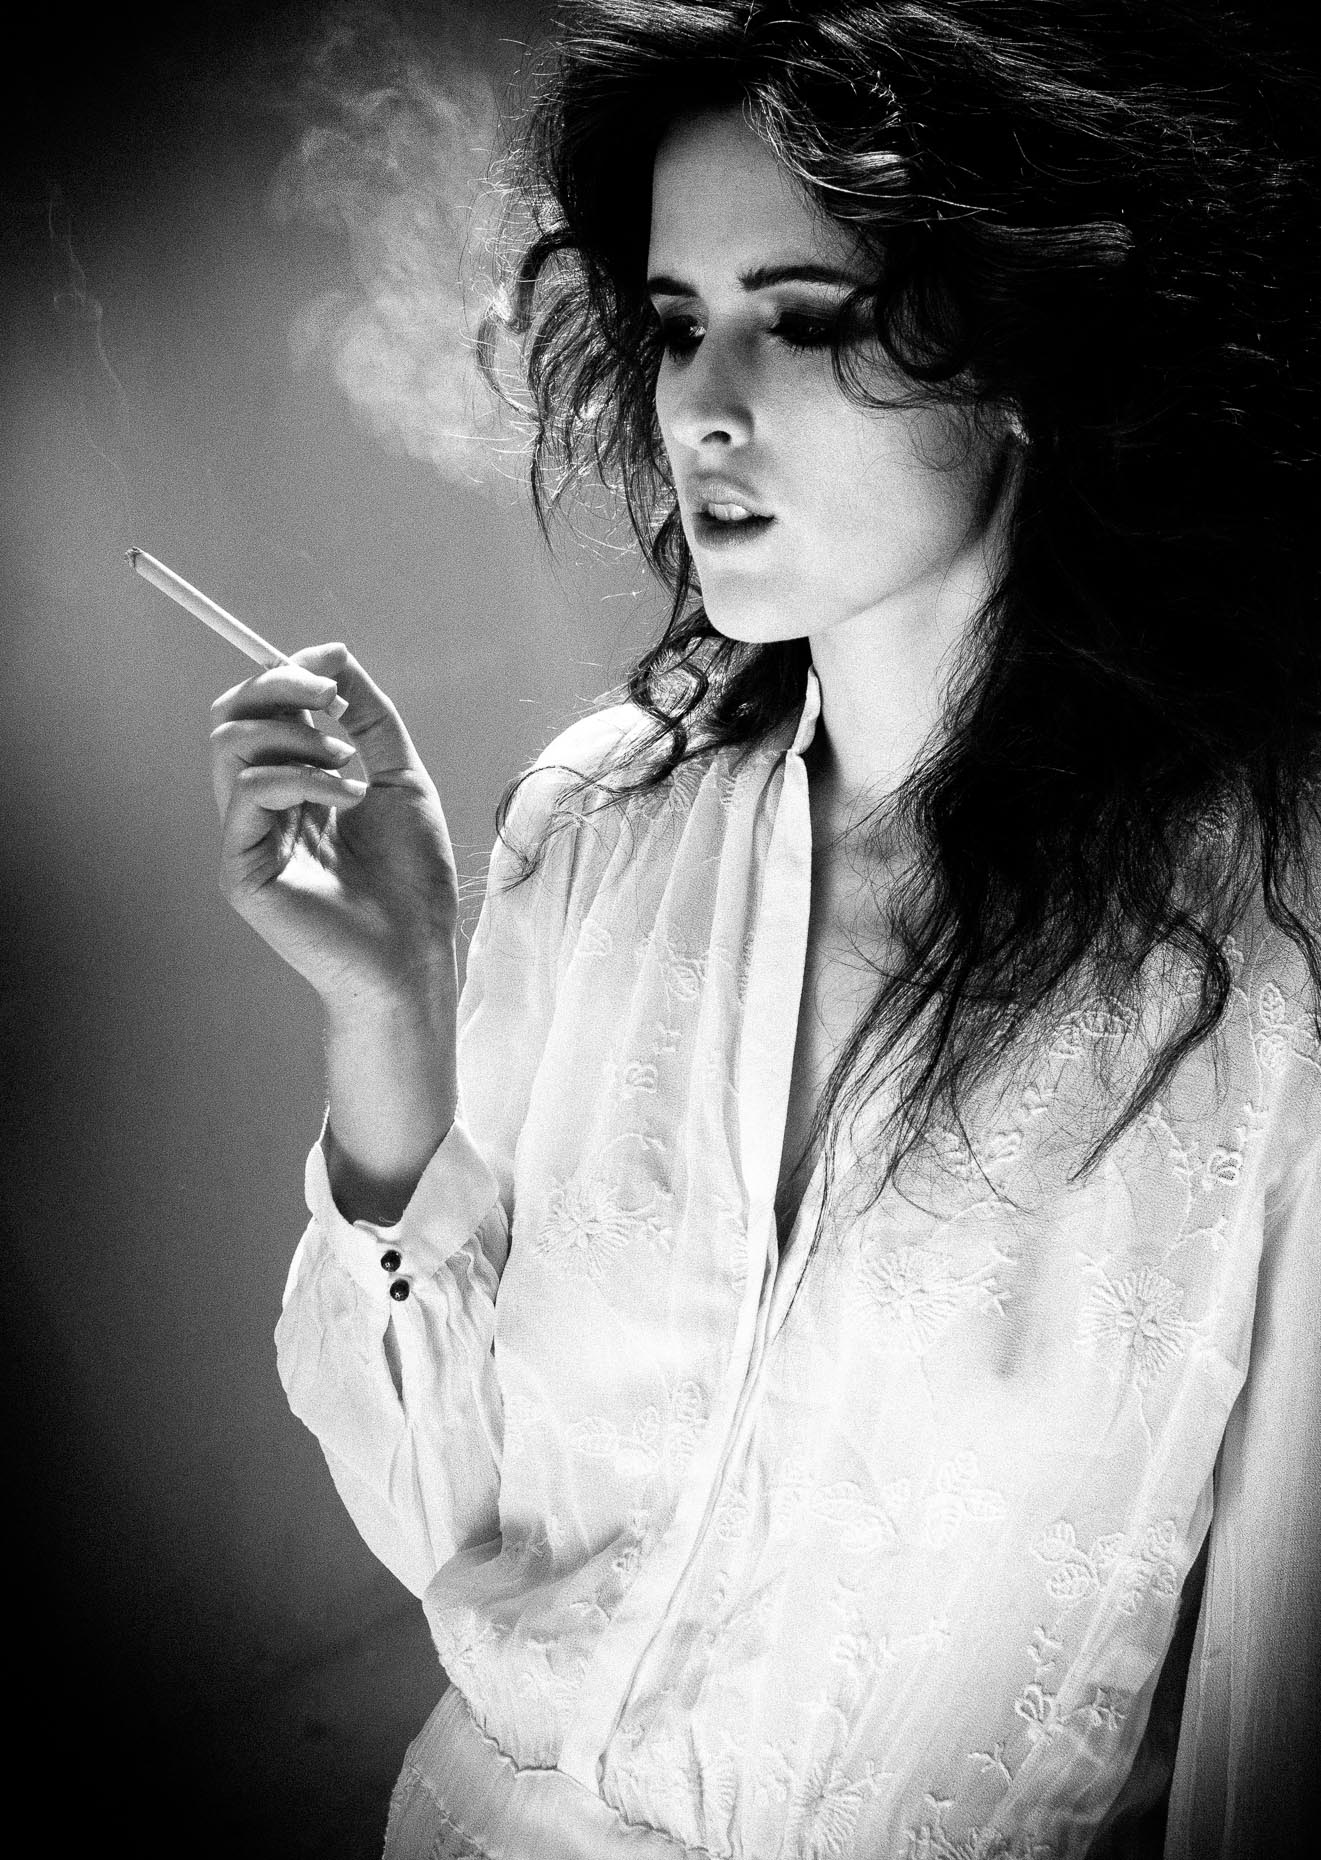 portrait-girl-smoking-cigarette